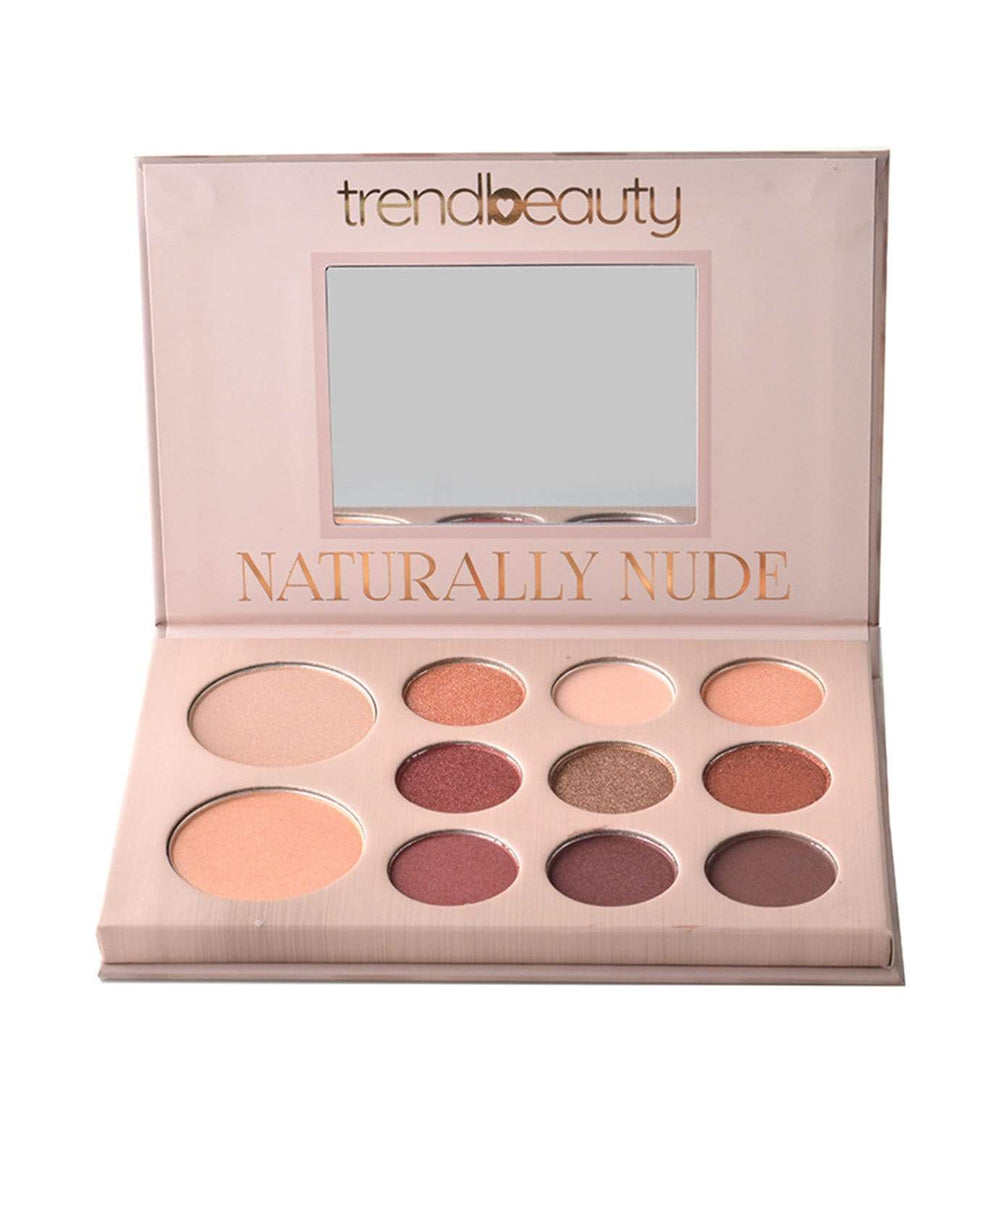 Trend Beauty Naturally Nude Eyeshadow & Contour Palette